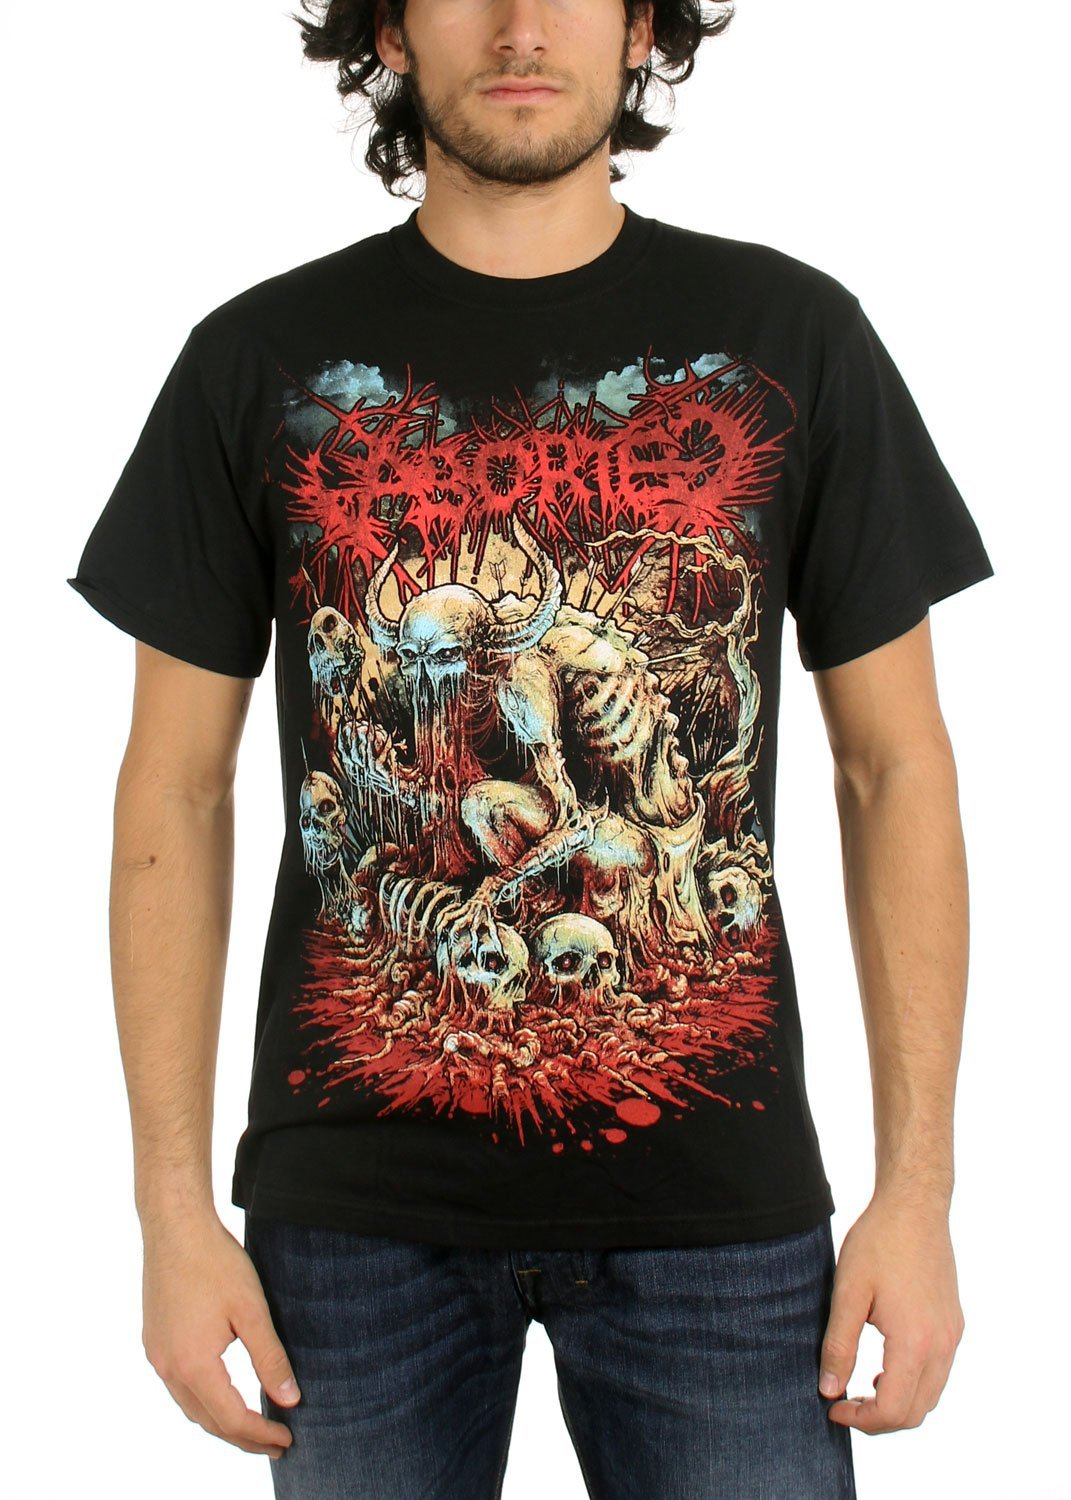 Aborted - Mens God Machine T-Shirt in Black: Music Fan T Shirts